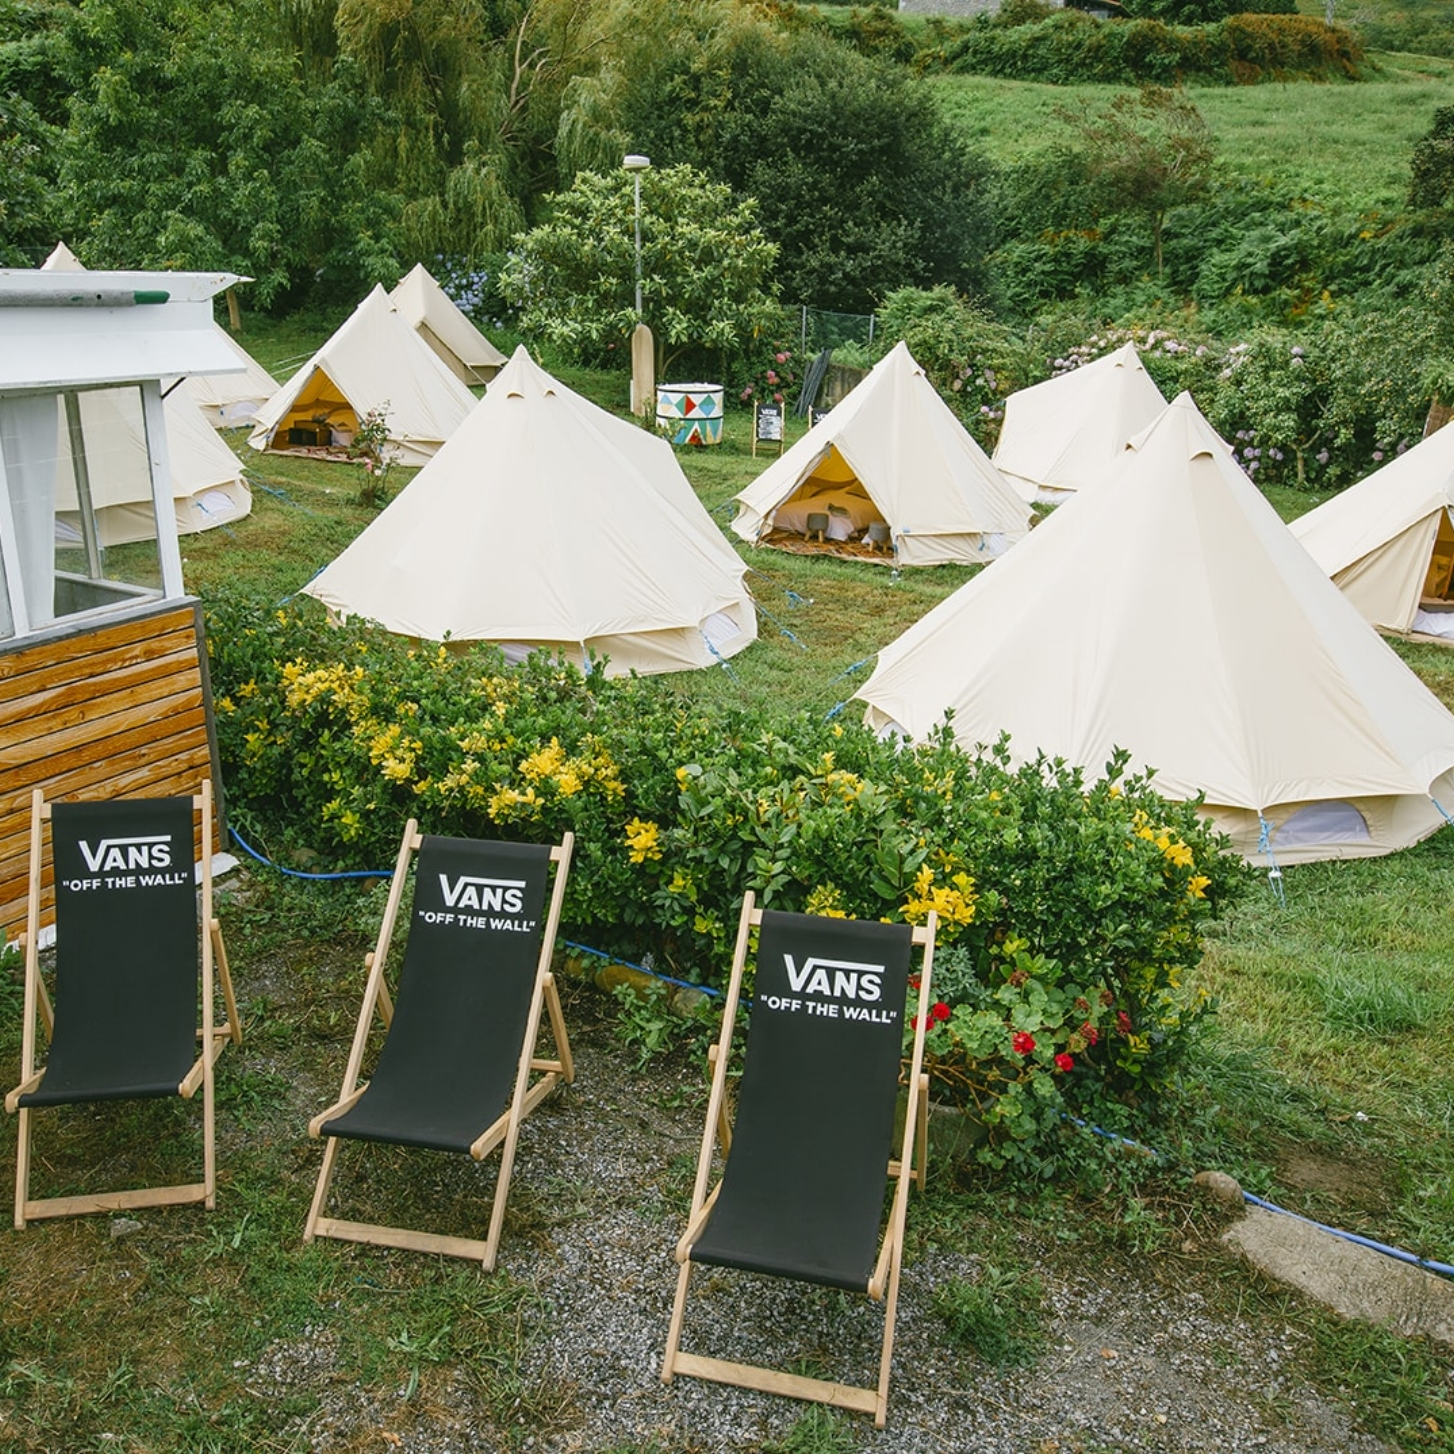 Snazzy_Camp_Biarritz_glamping_paysbasque_holidays (22).jpg